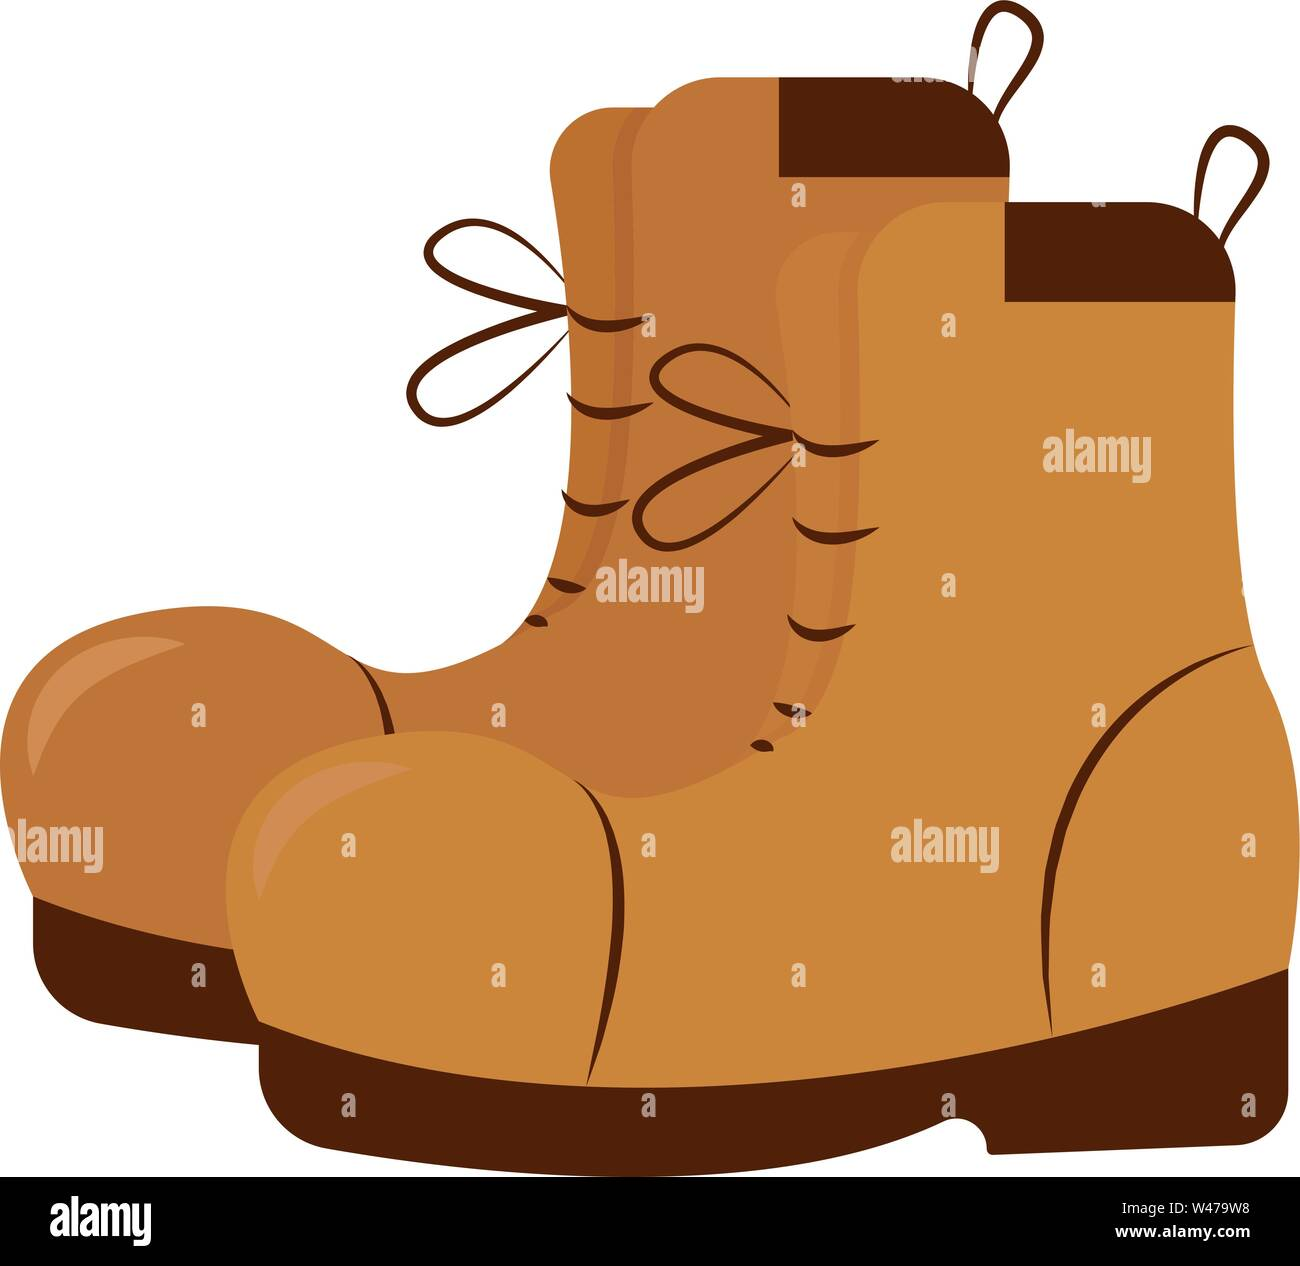 Brown shoes, illustration, vector on white background. - Stock Image